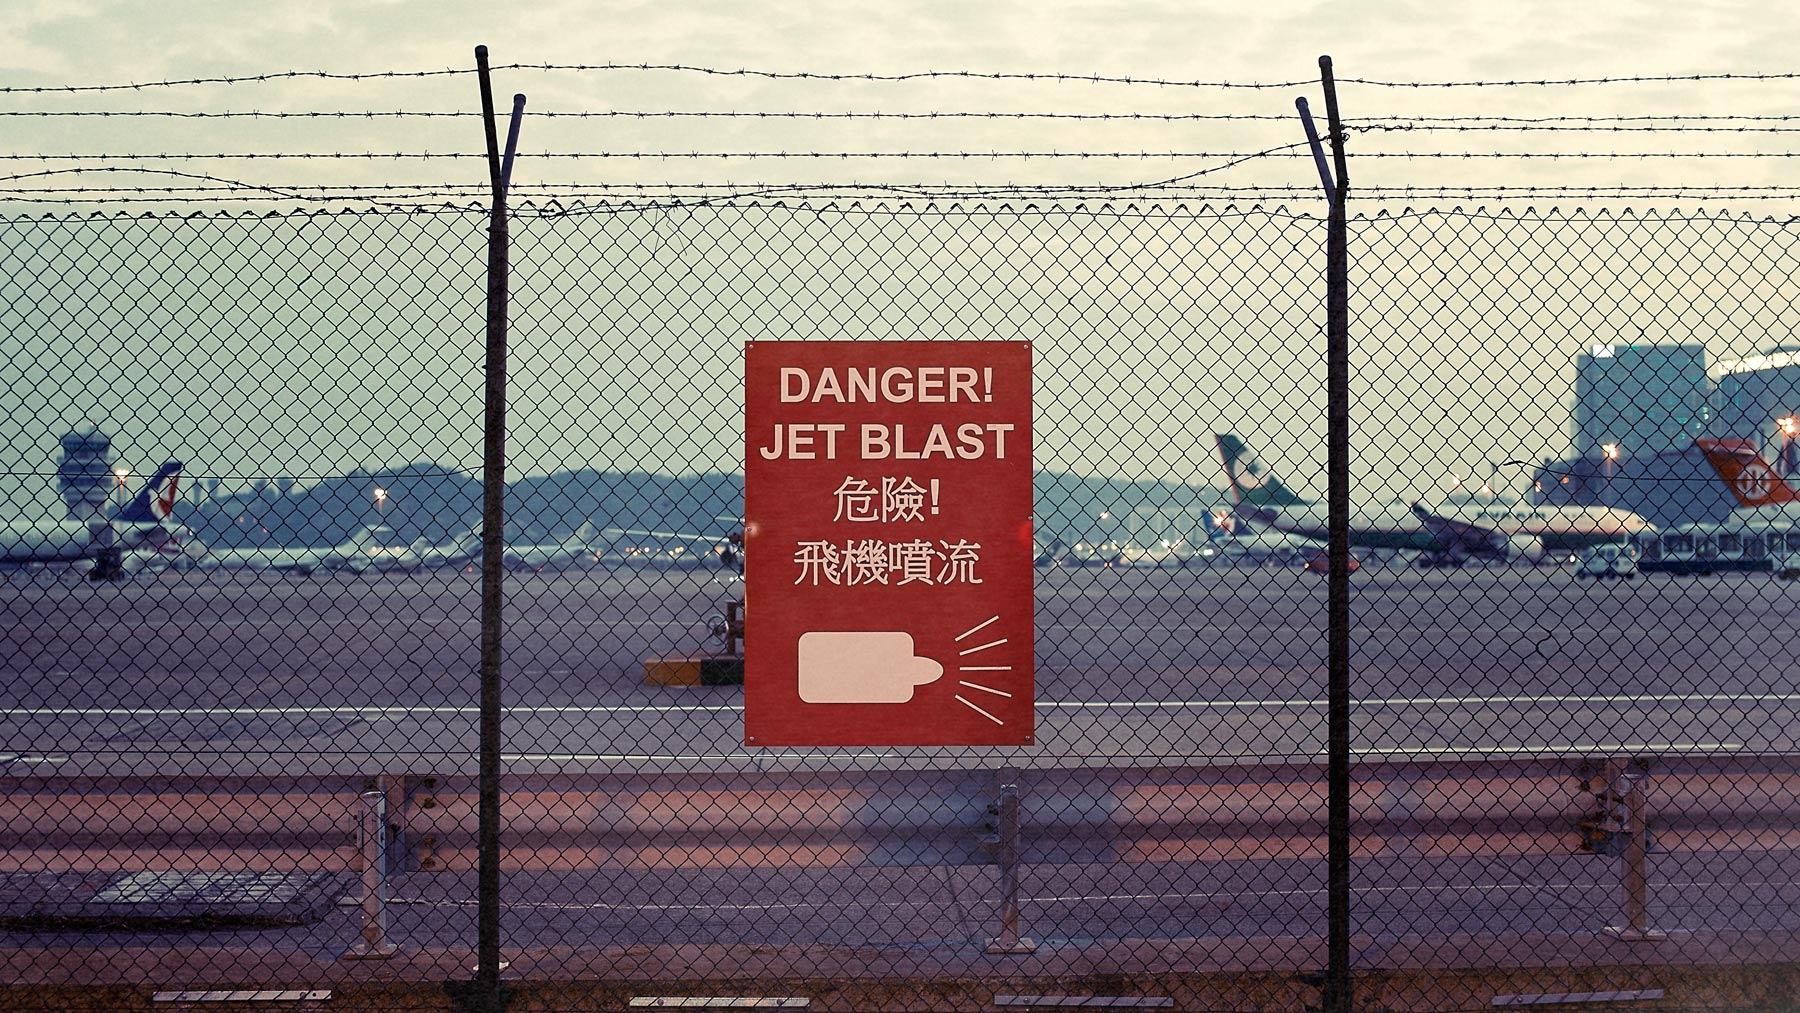 Good Boy Wolf Photographer, filmic landscape,  warning sign at Macau airport